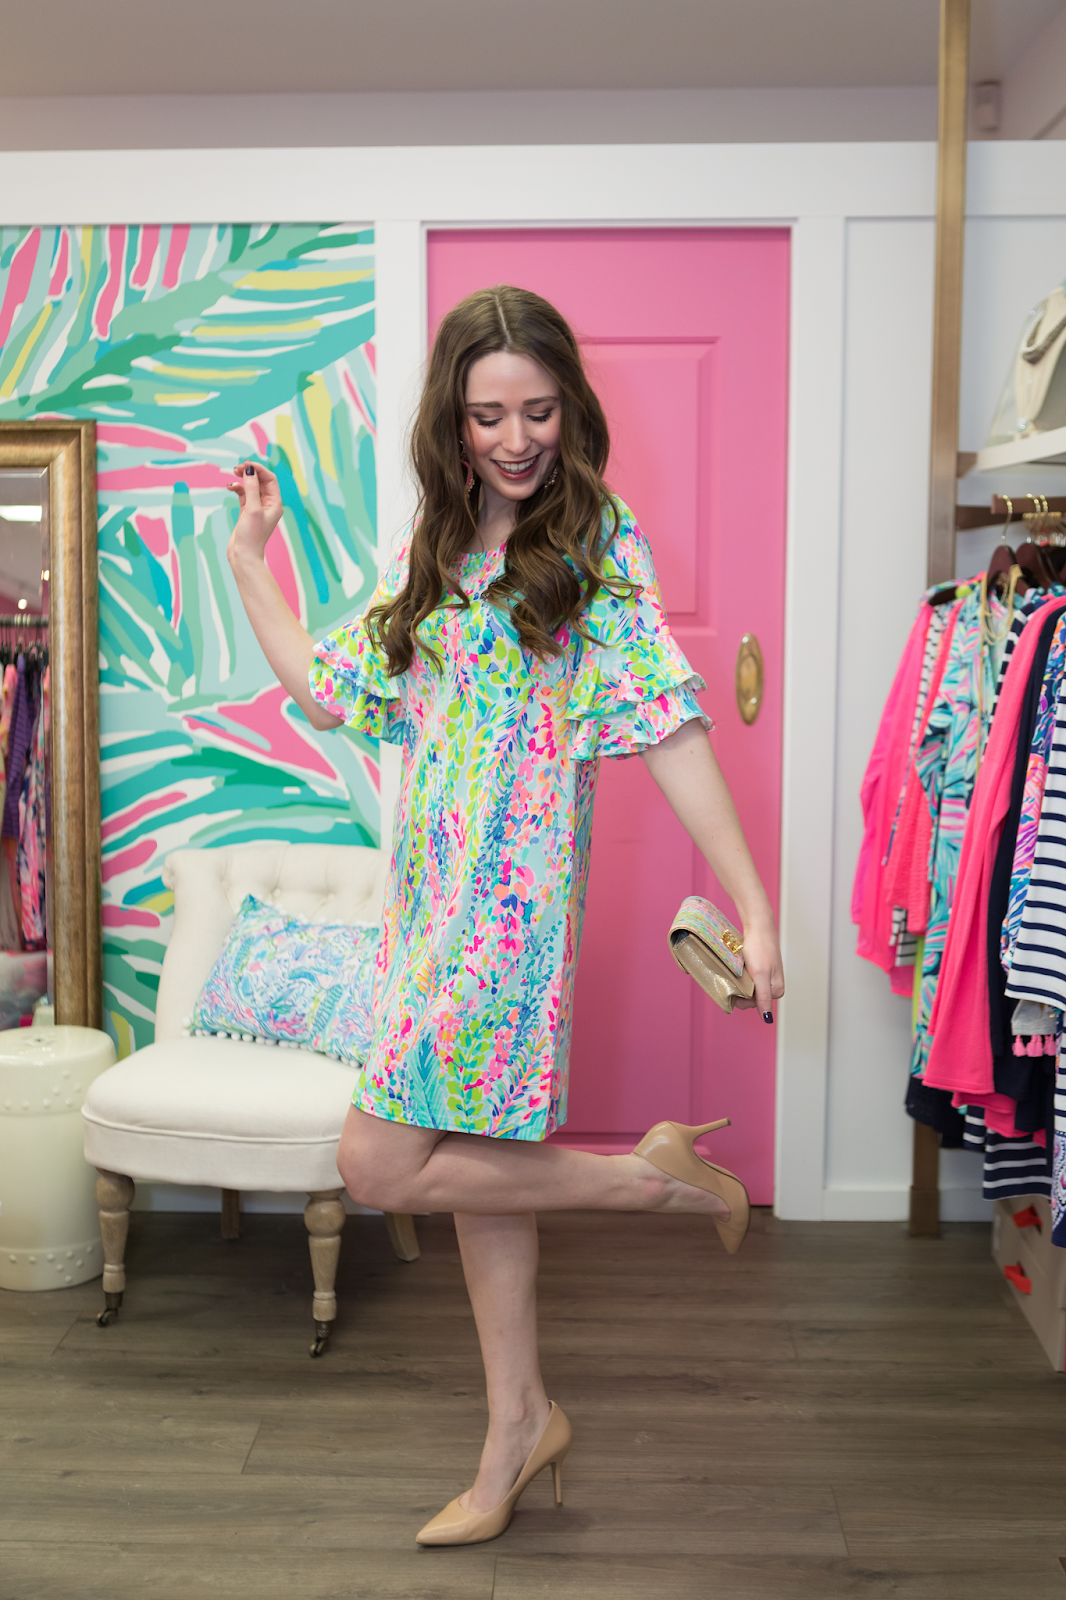 Wearing Lilly Pulitzer for Bridal Shower